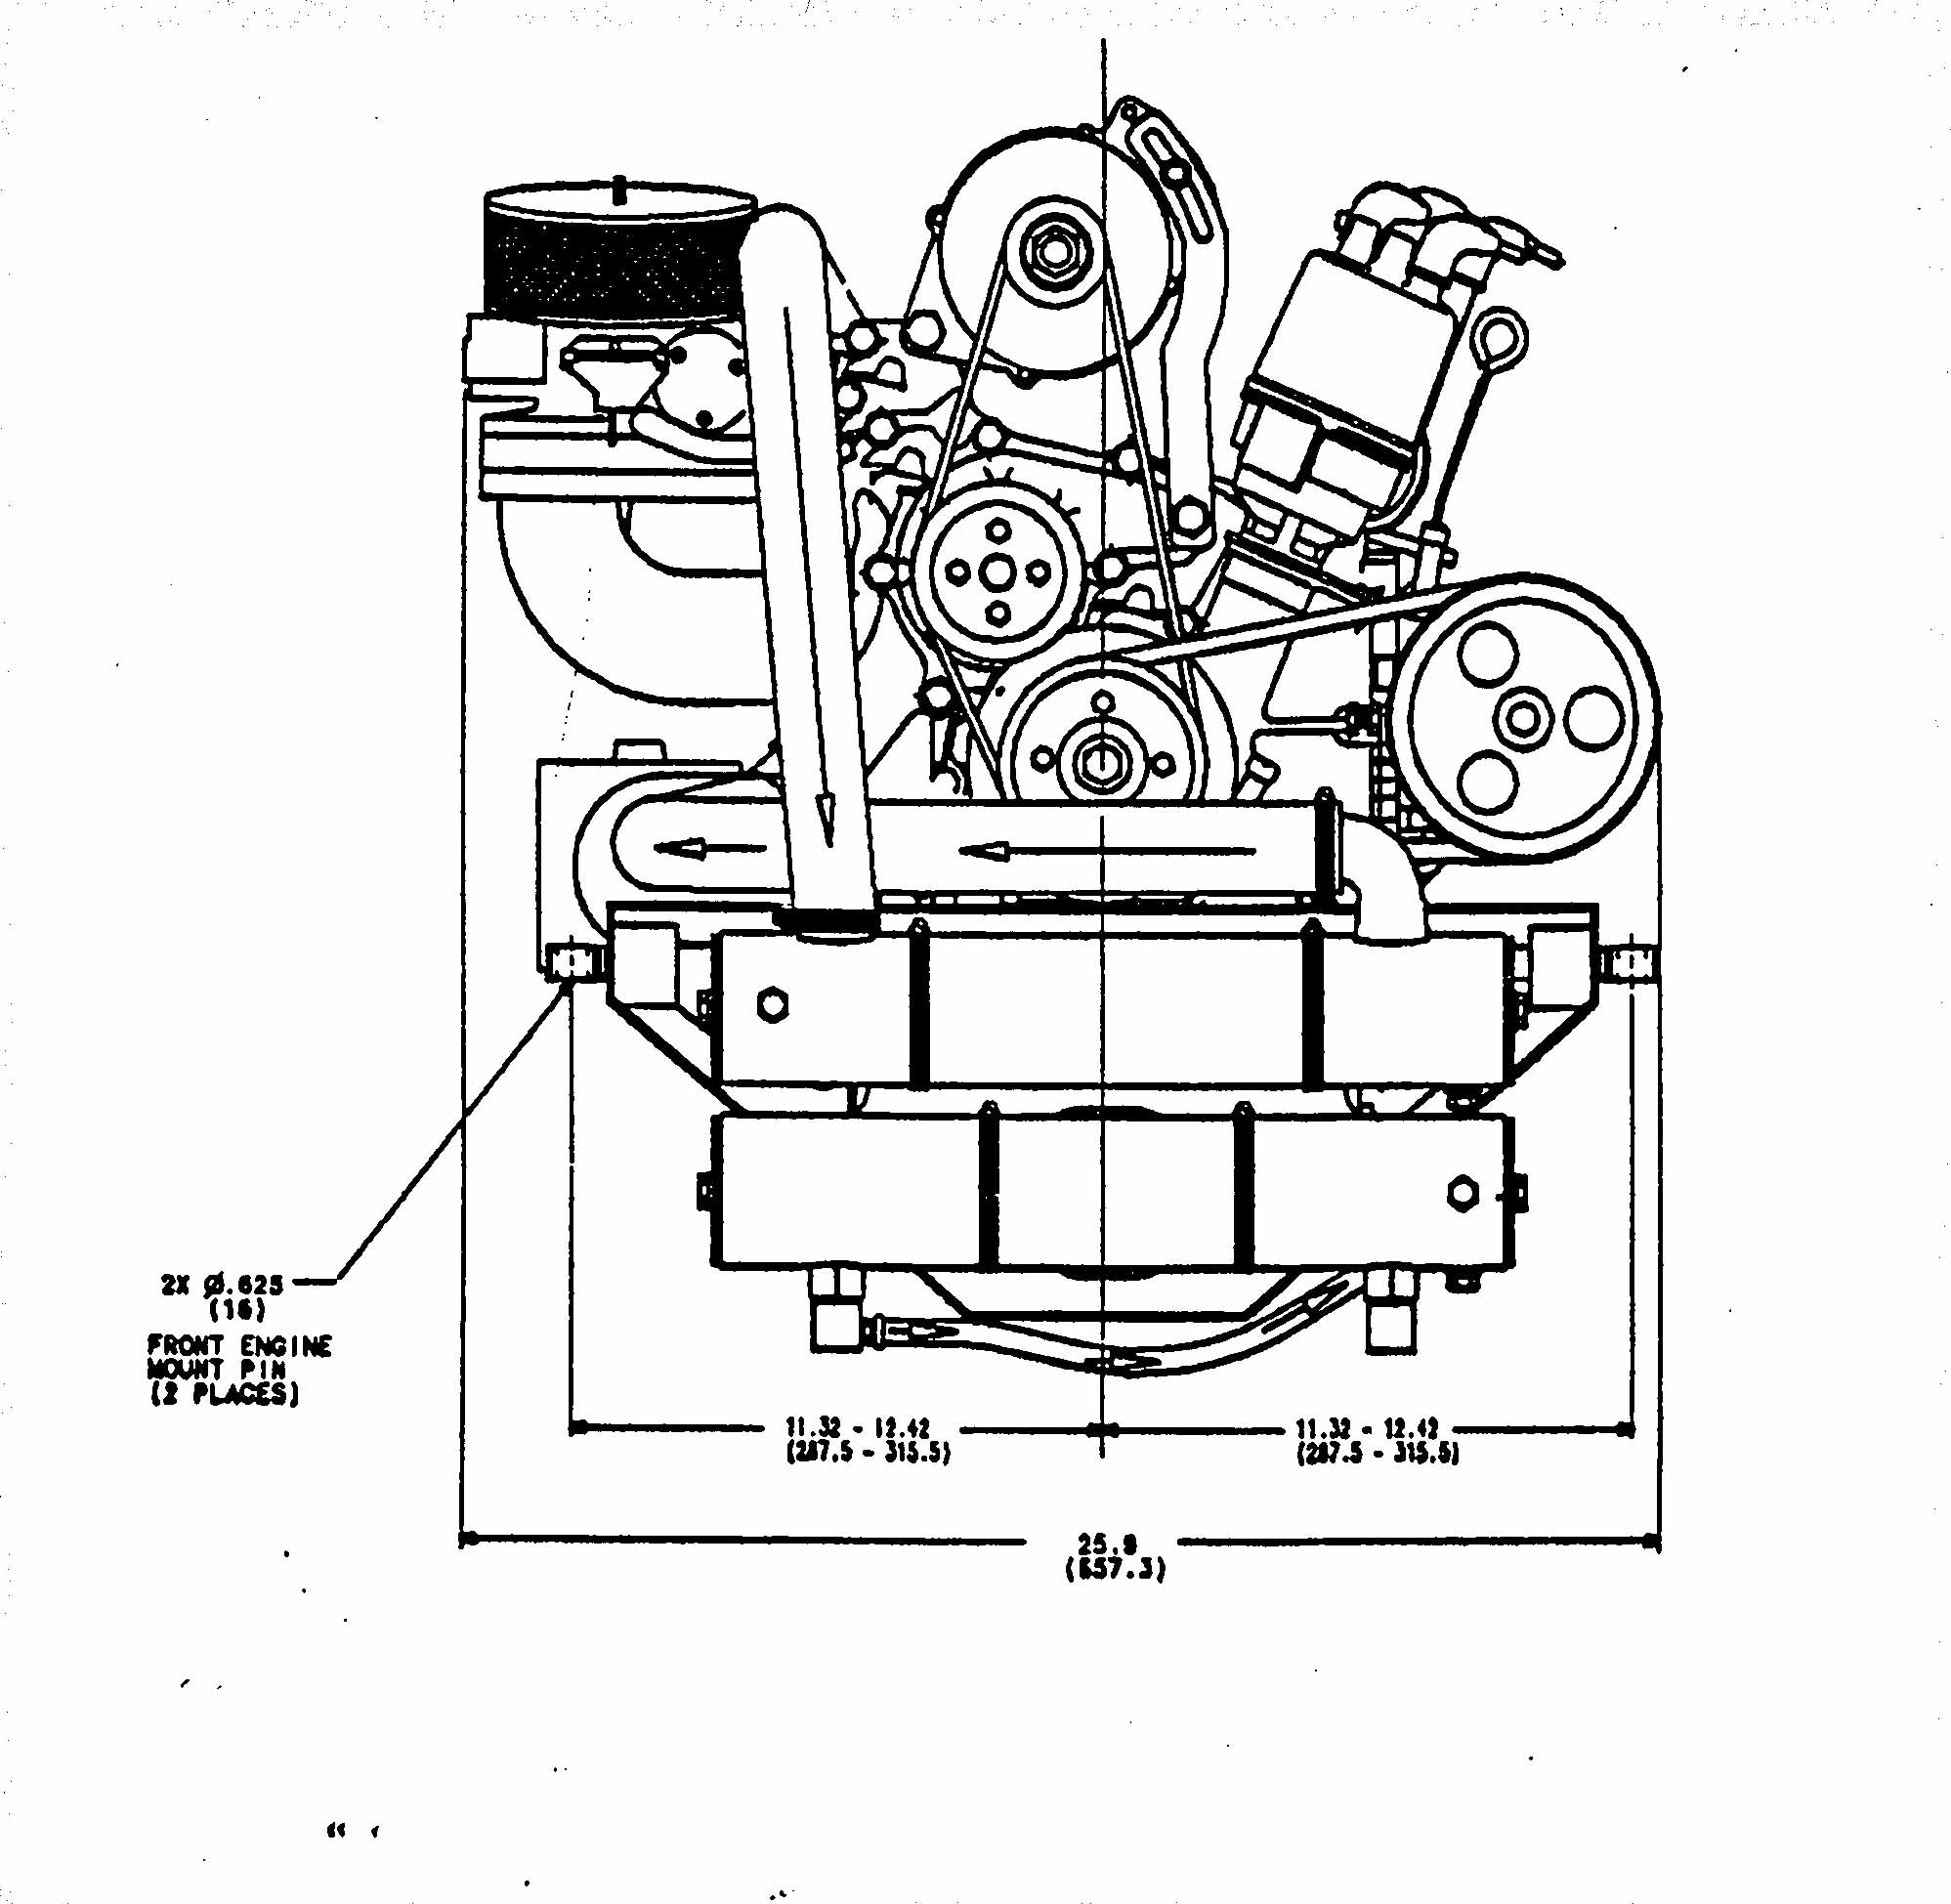 13b Rotary Engine Diagram